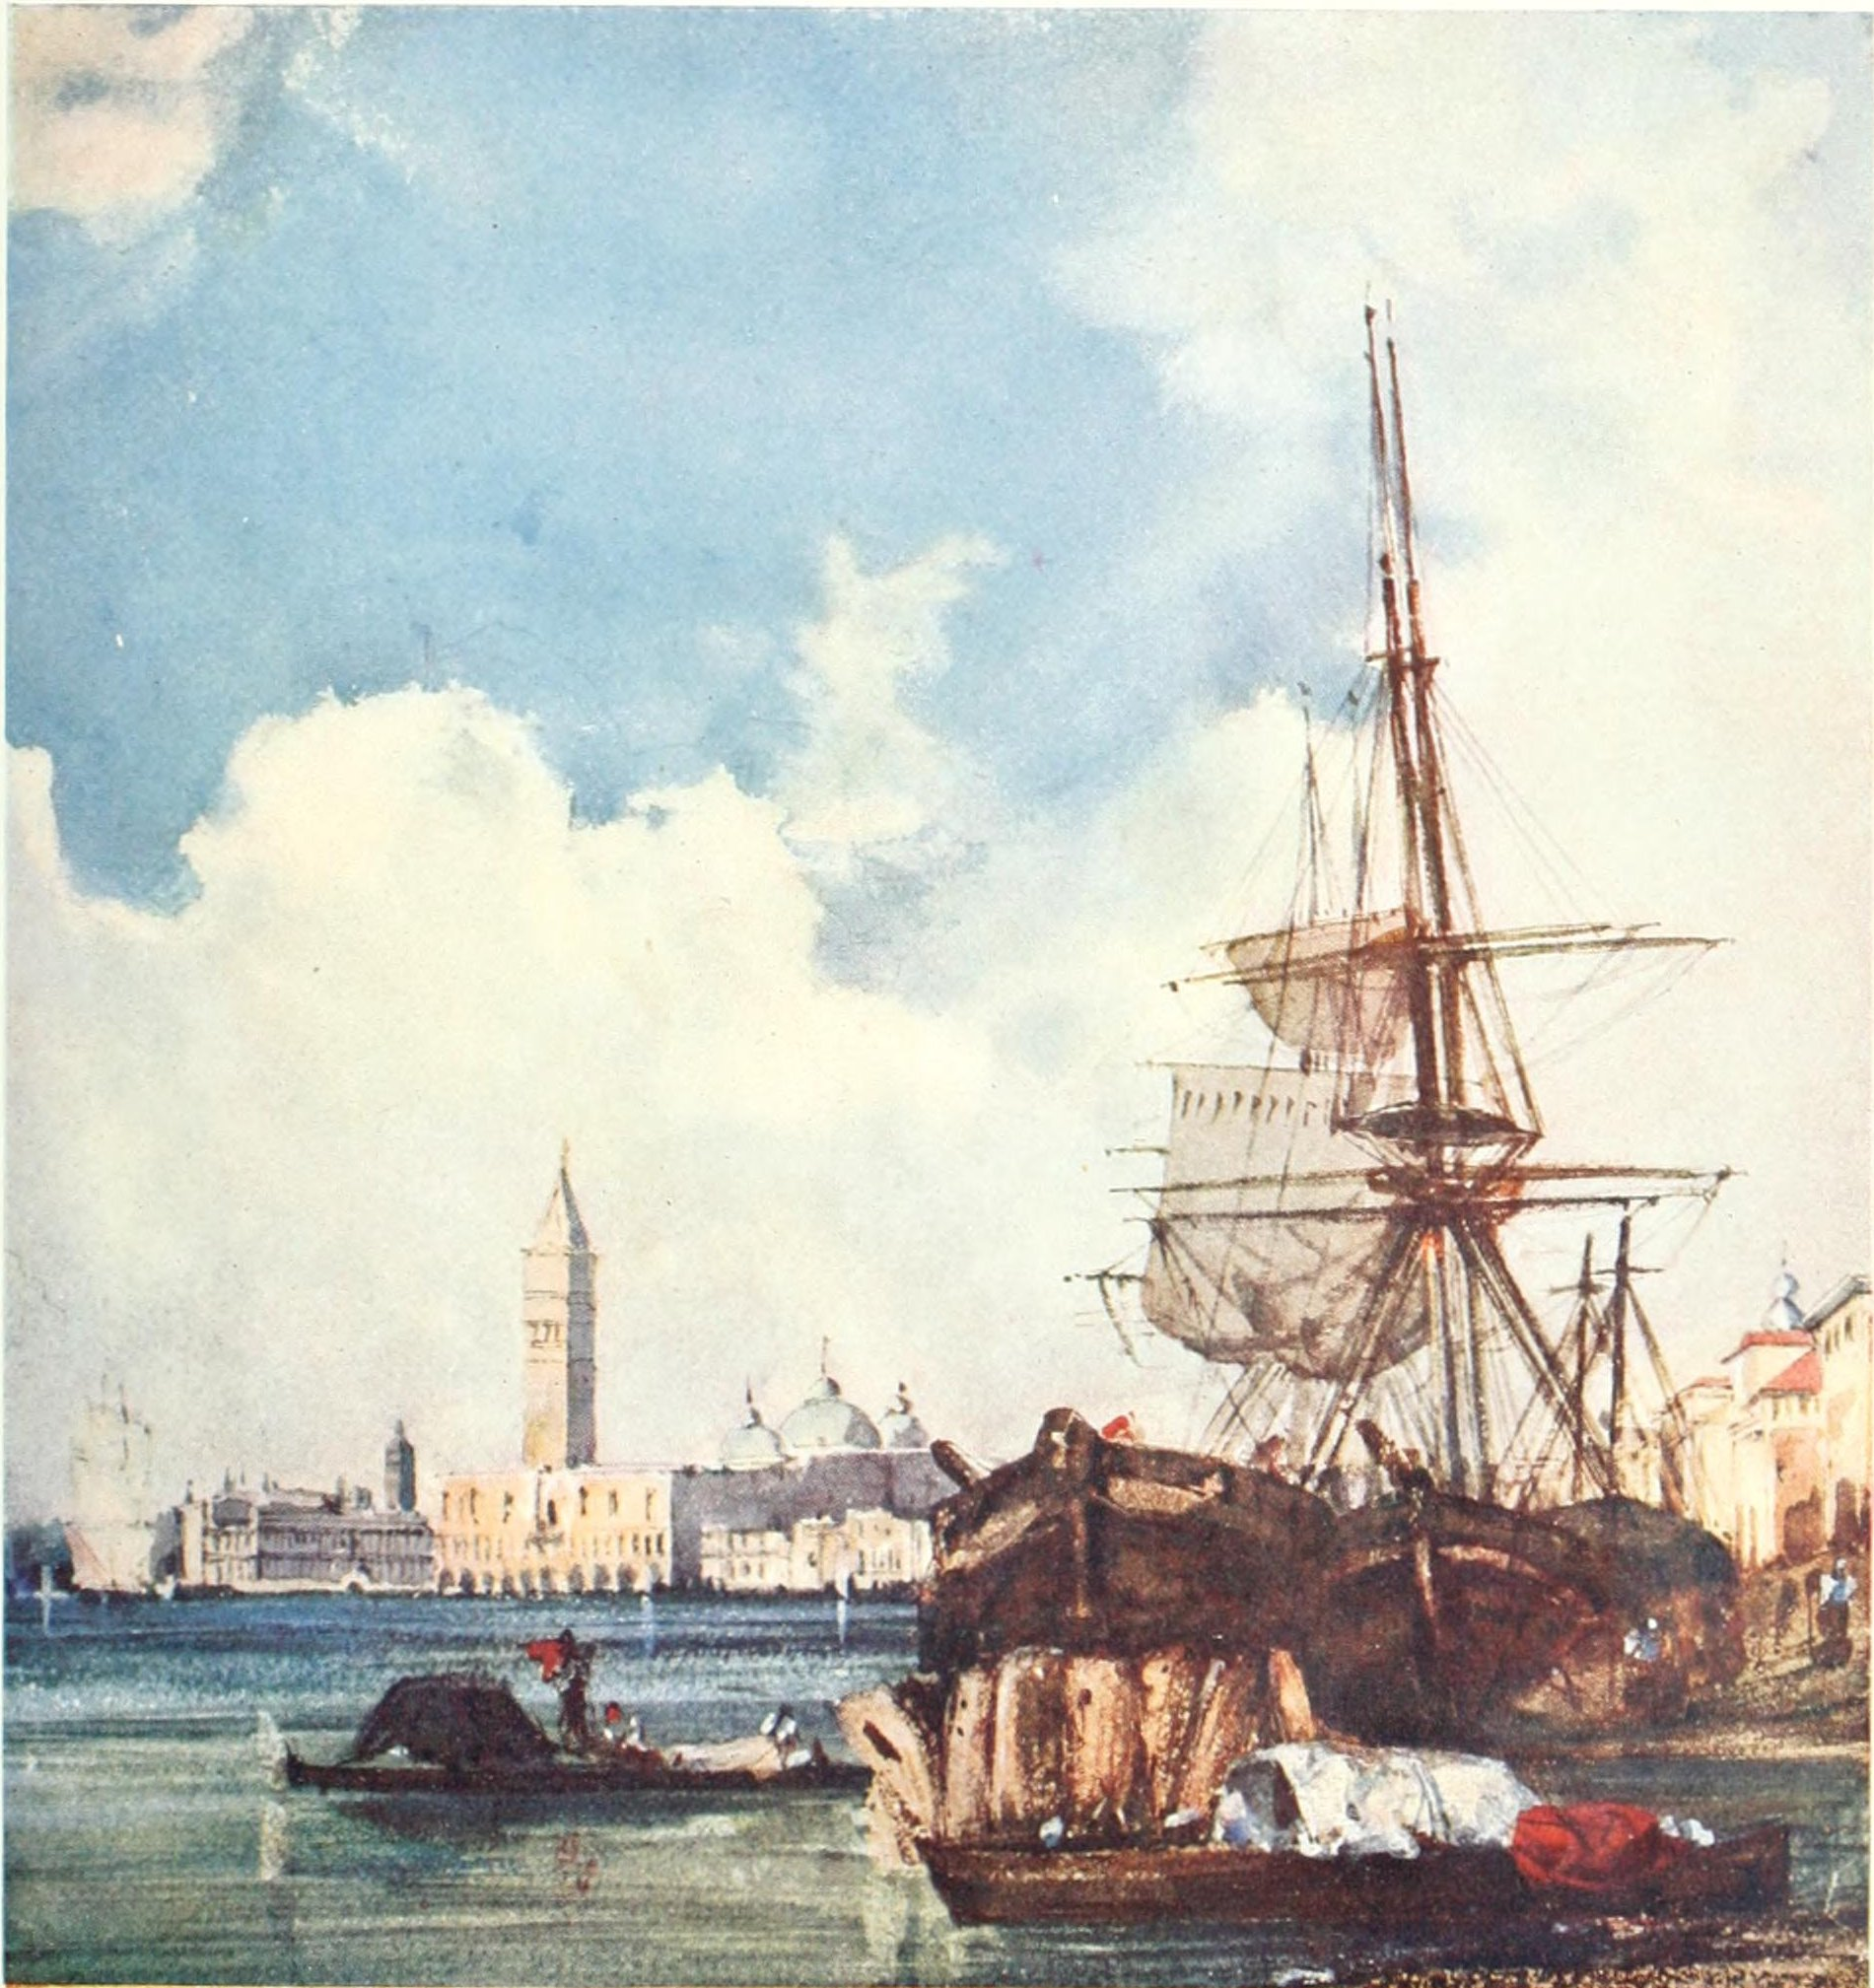 Ричард Паркс Бонингтон (англ. Richard Parkes Bonington; 1802-1828 ...